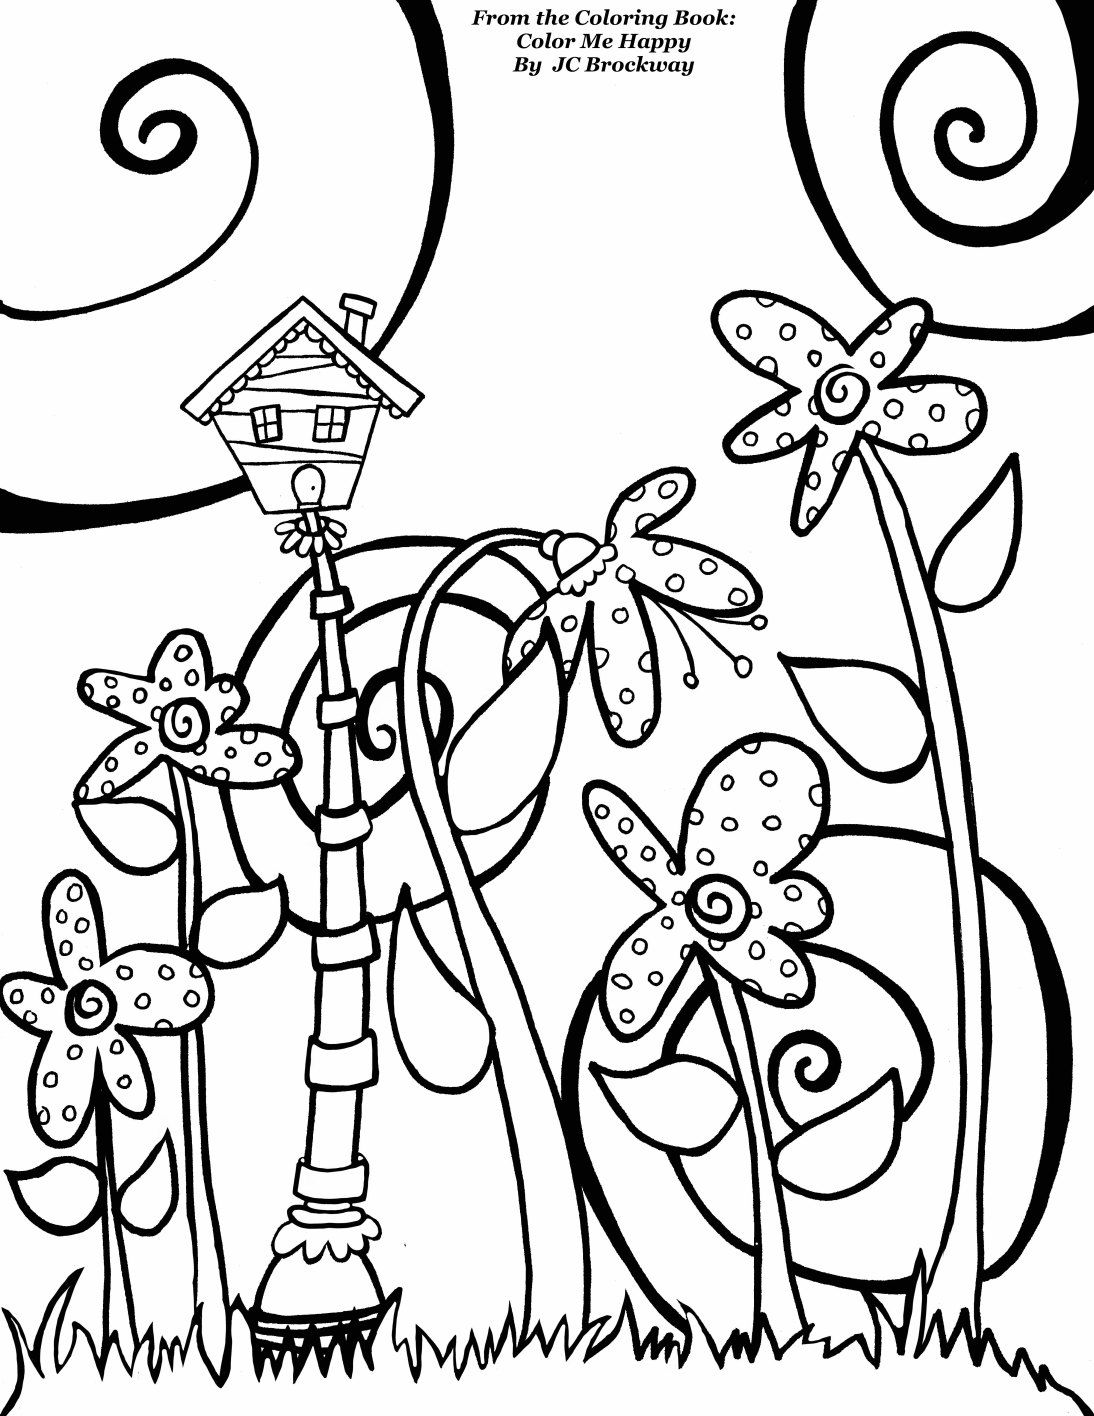 Free birdhouse coloring page from adult coloring worldwide from the coloring book color me happy by j c brockway whimsical doodle art